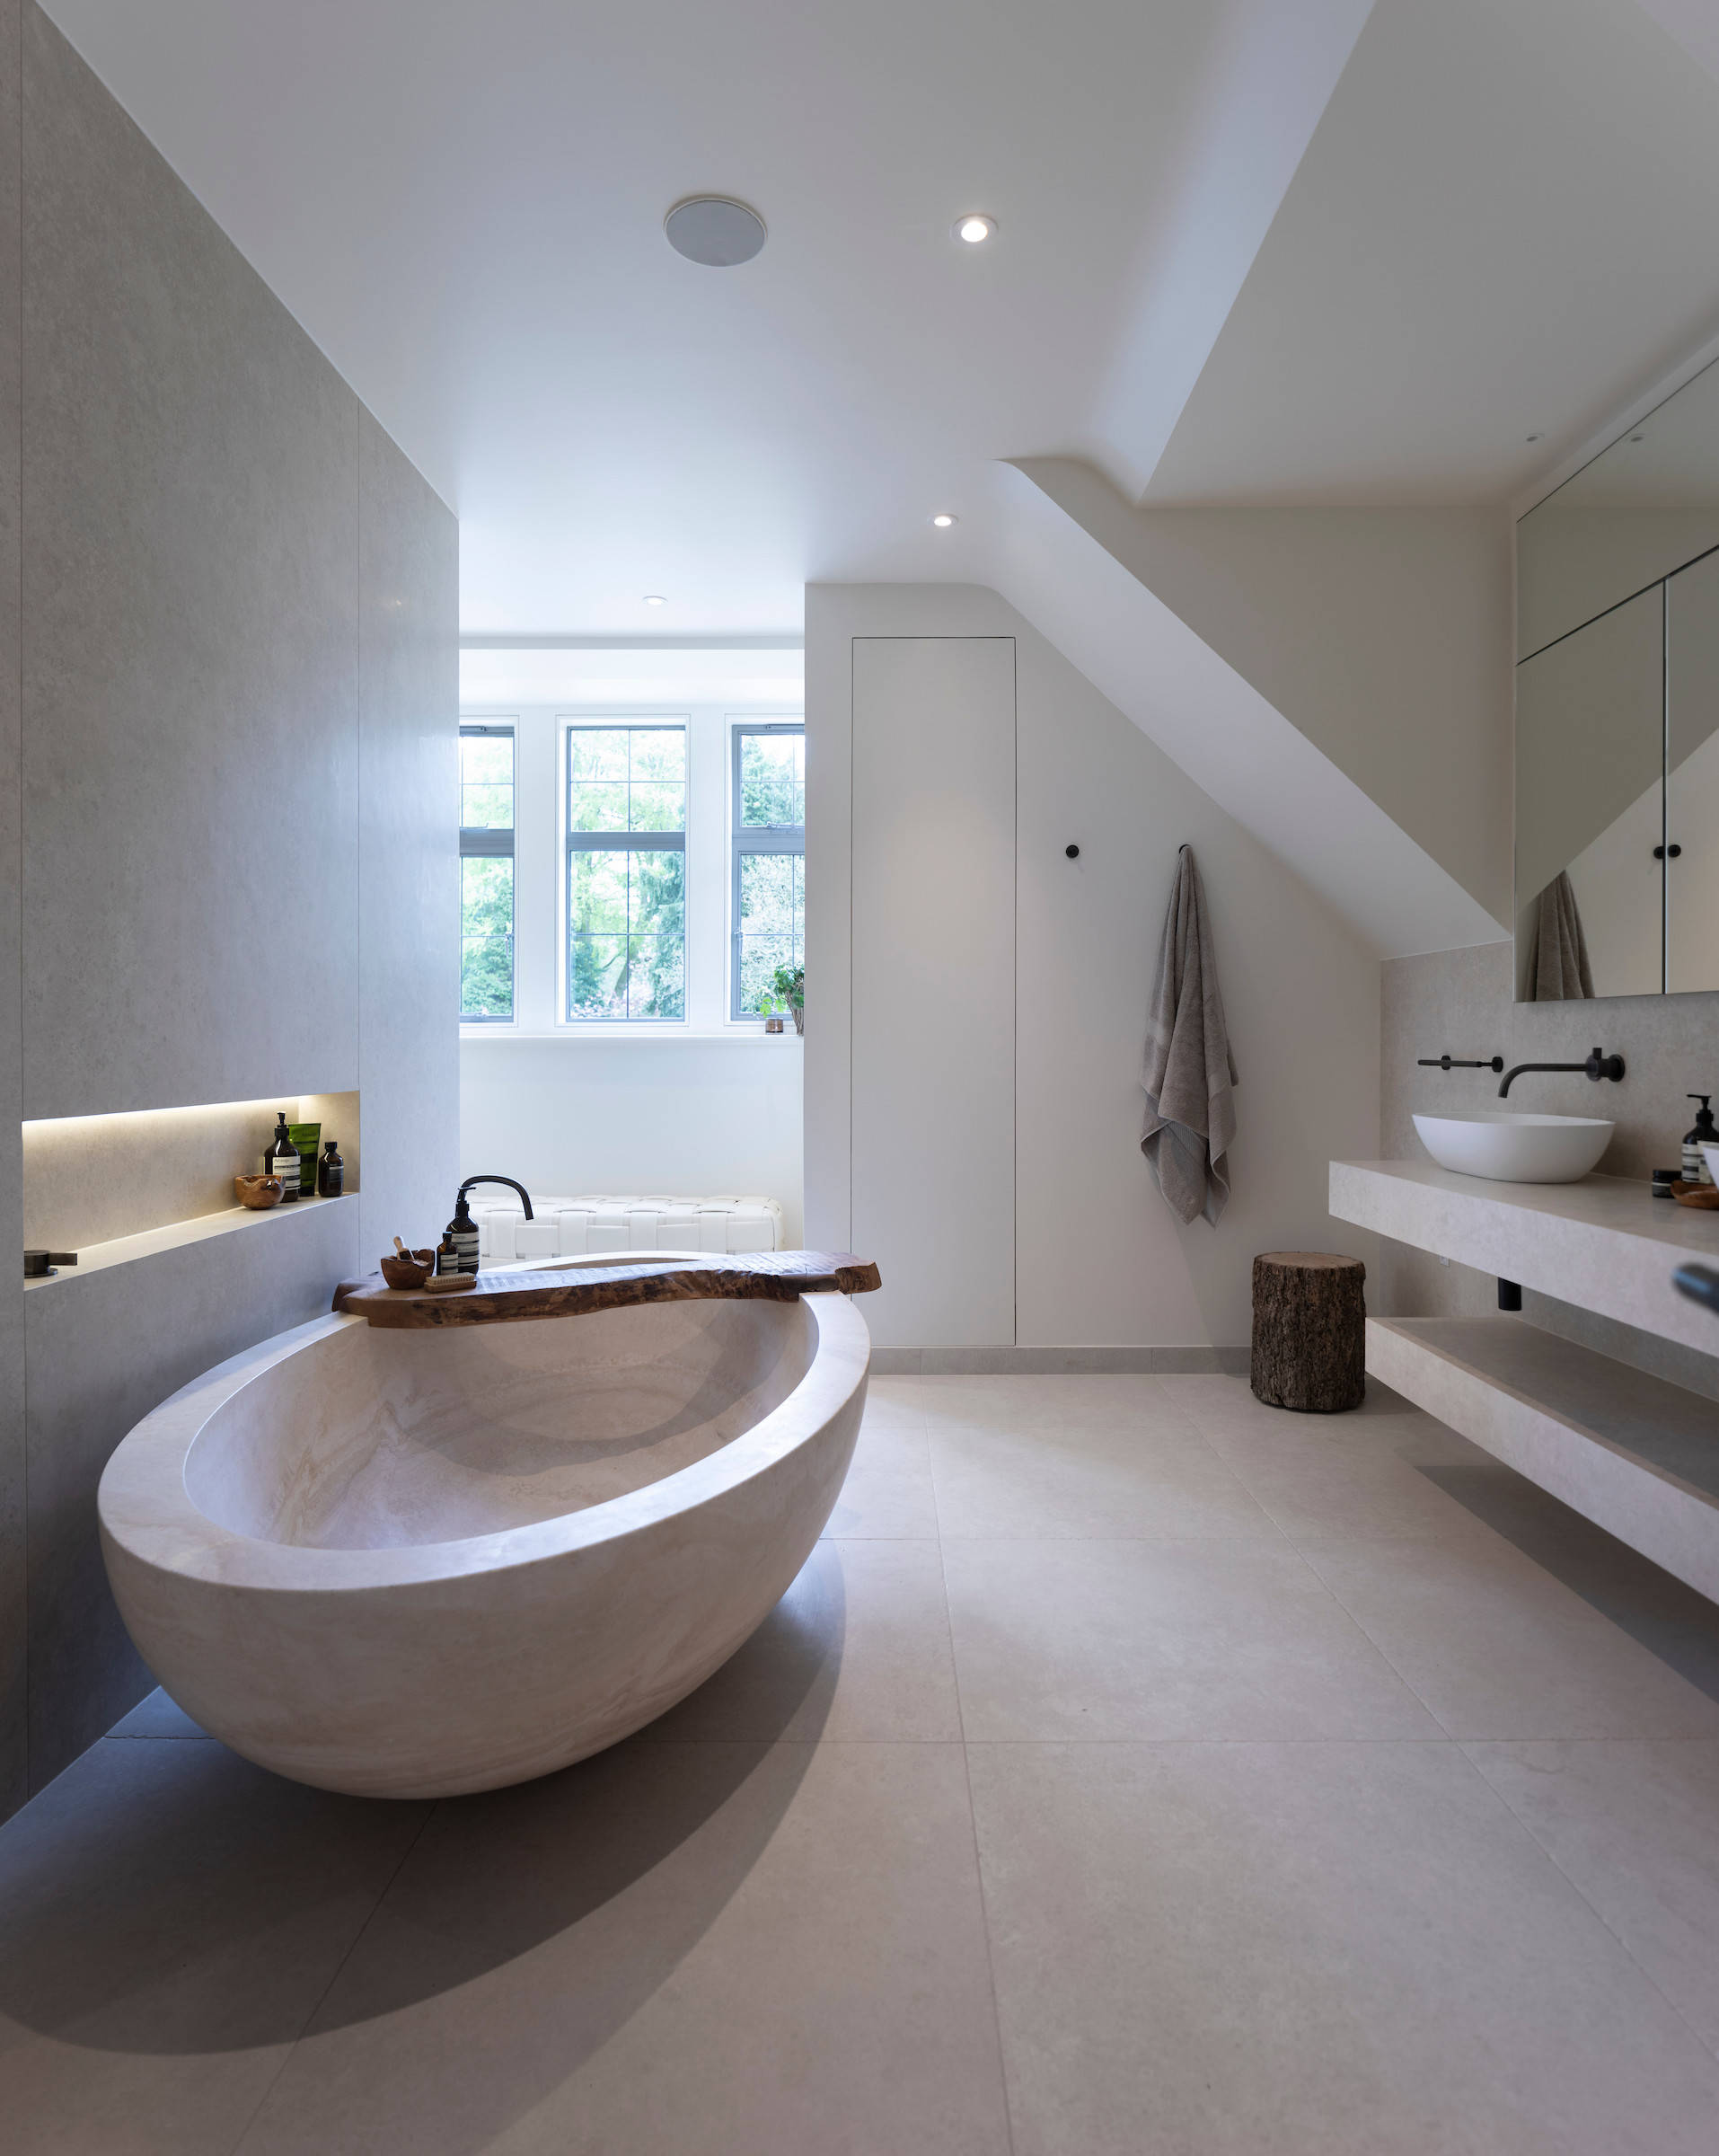 75 Beautiful Bathroom With Tile Countertops Pictures Ideas December 2020 Houzz